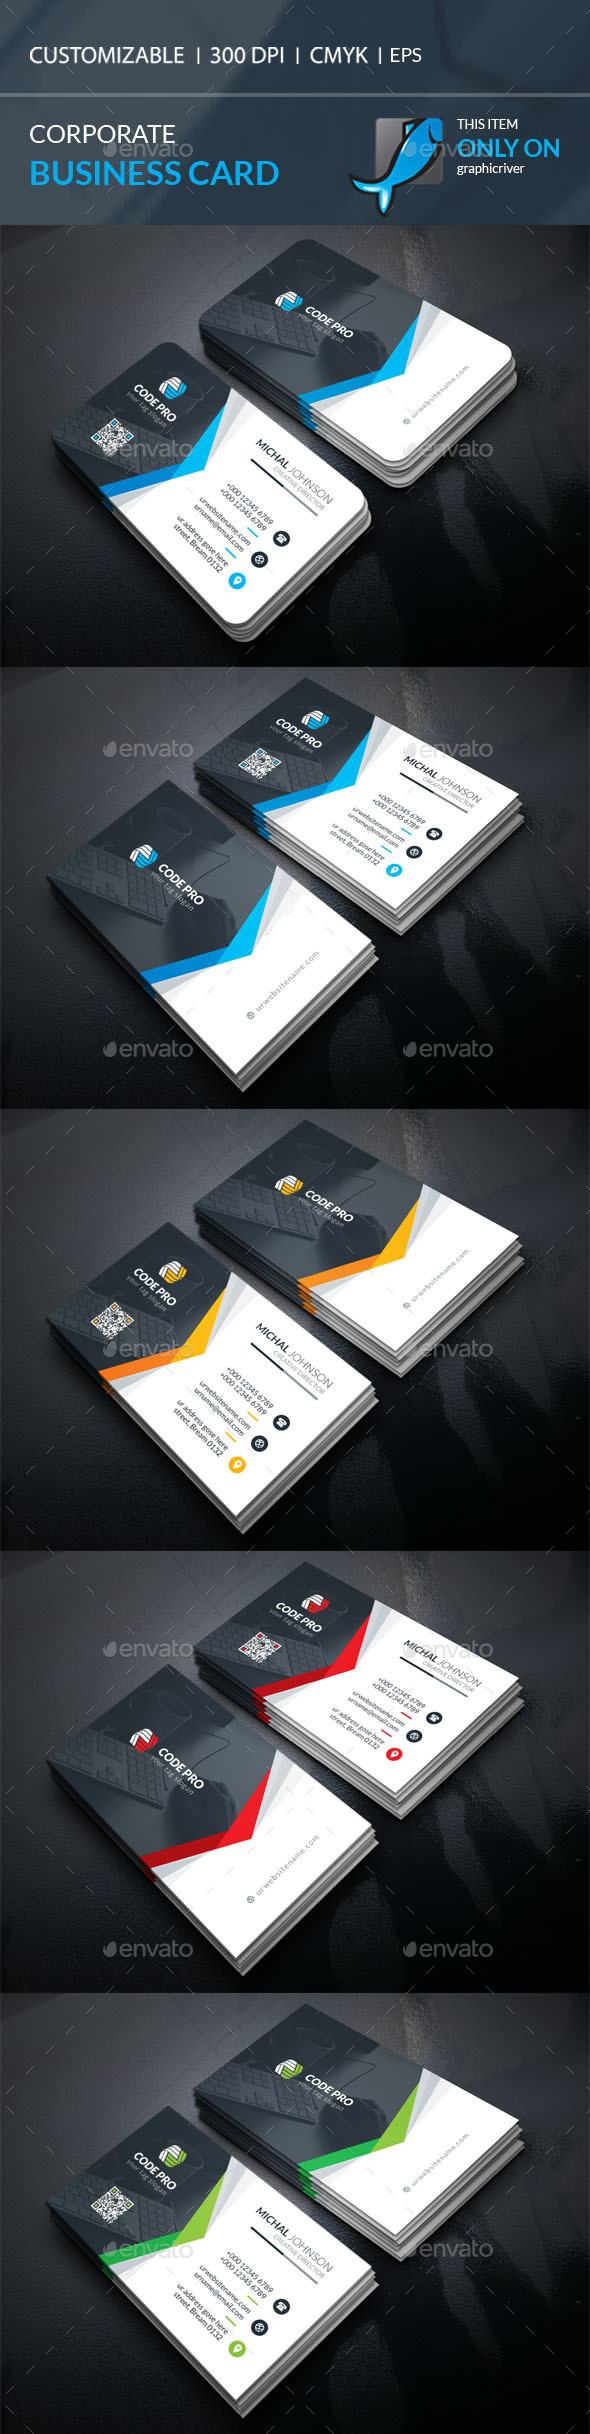 Corporate Business Card Template Vector EPS, AI Illustrator ...